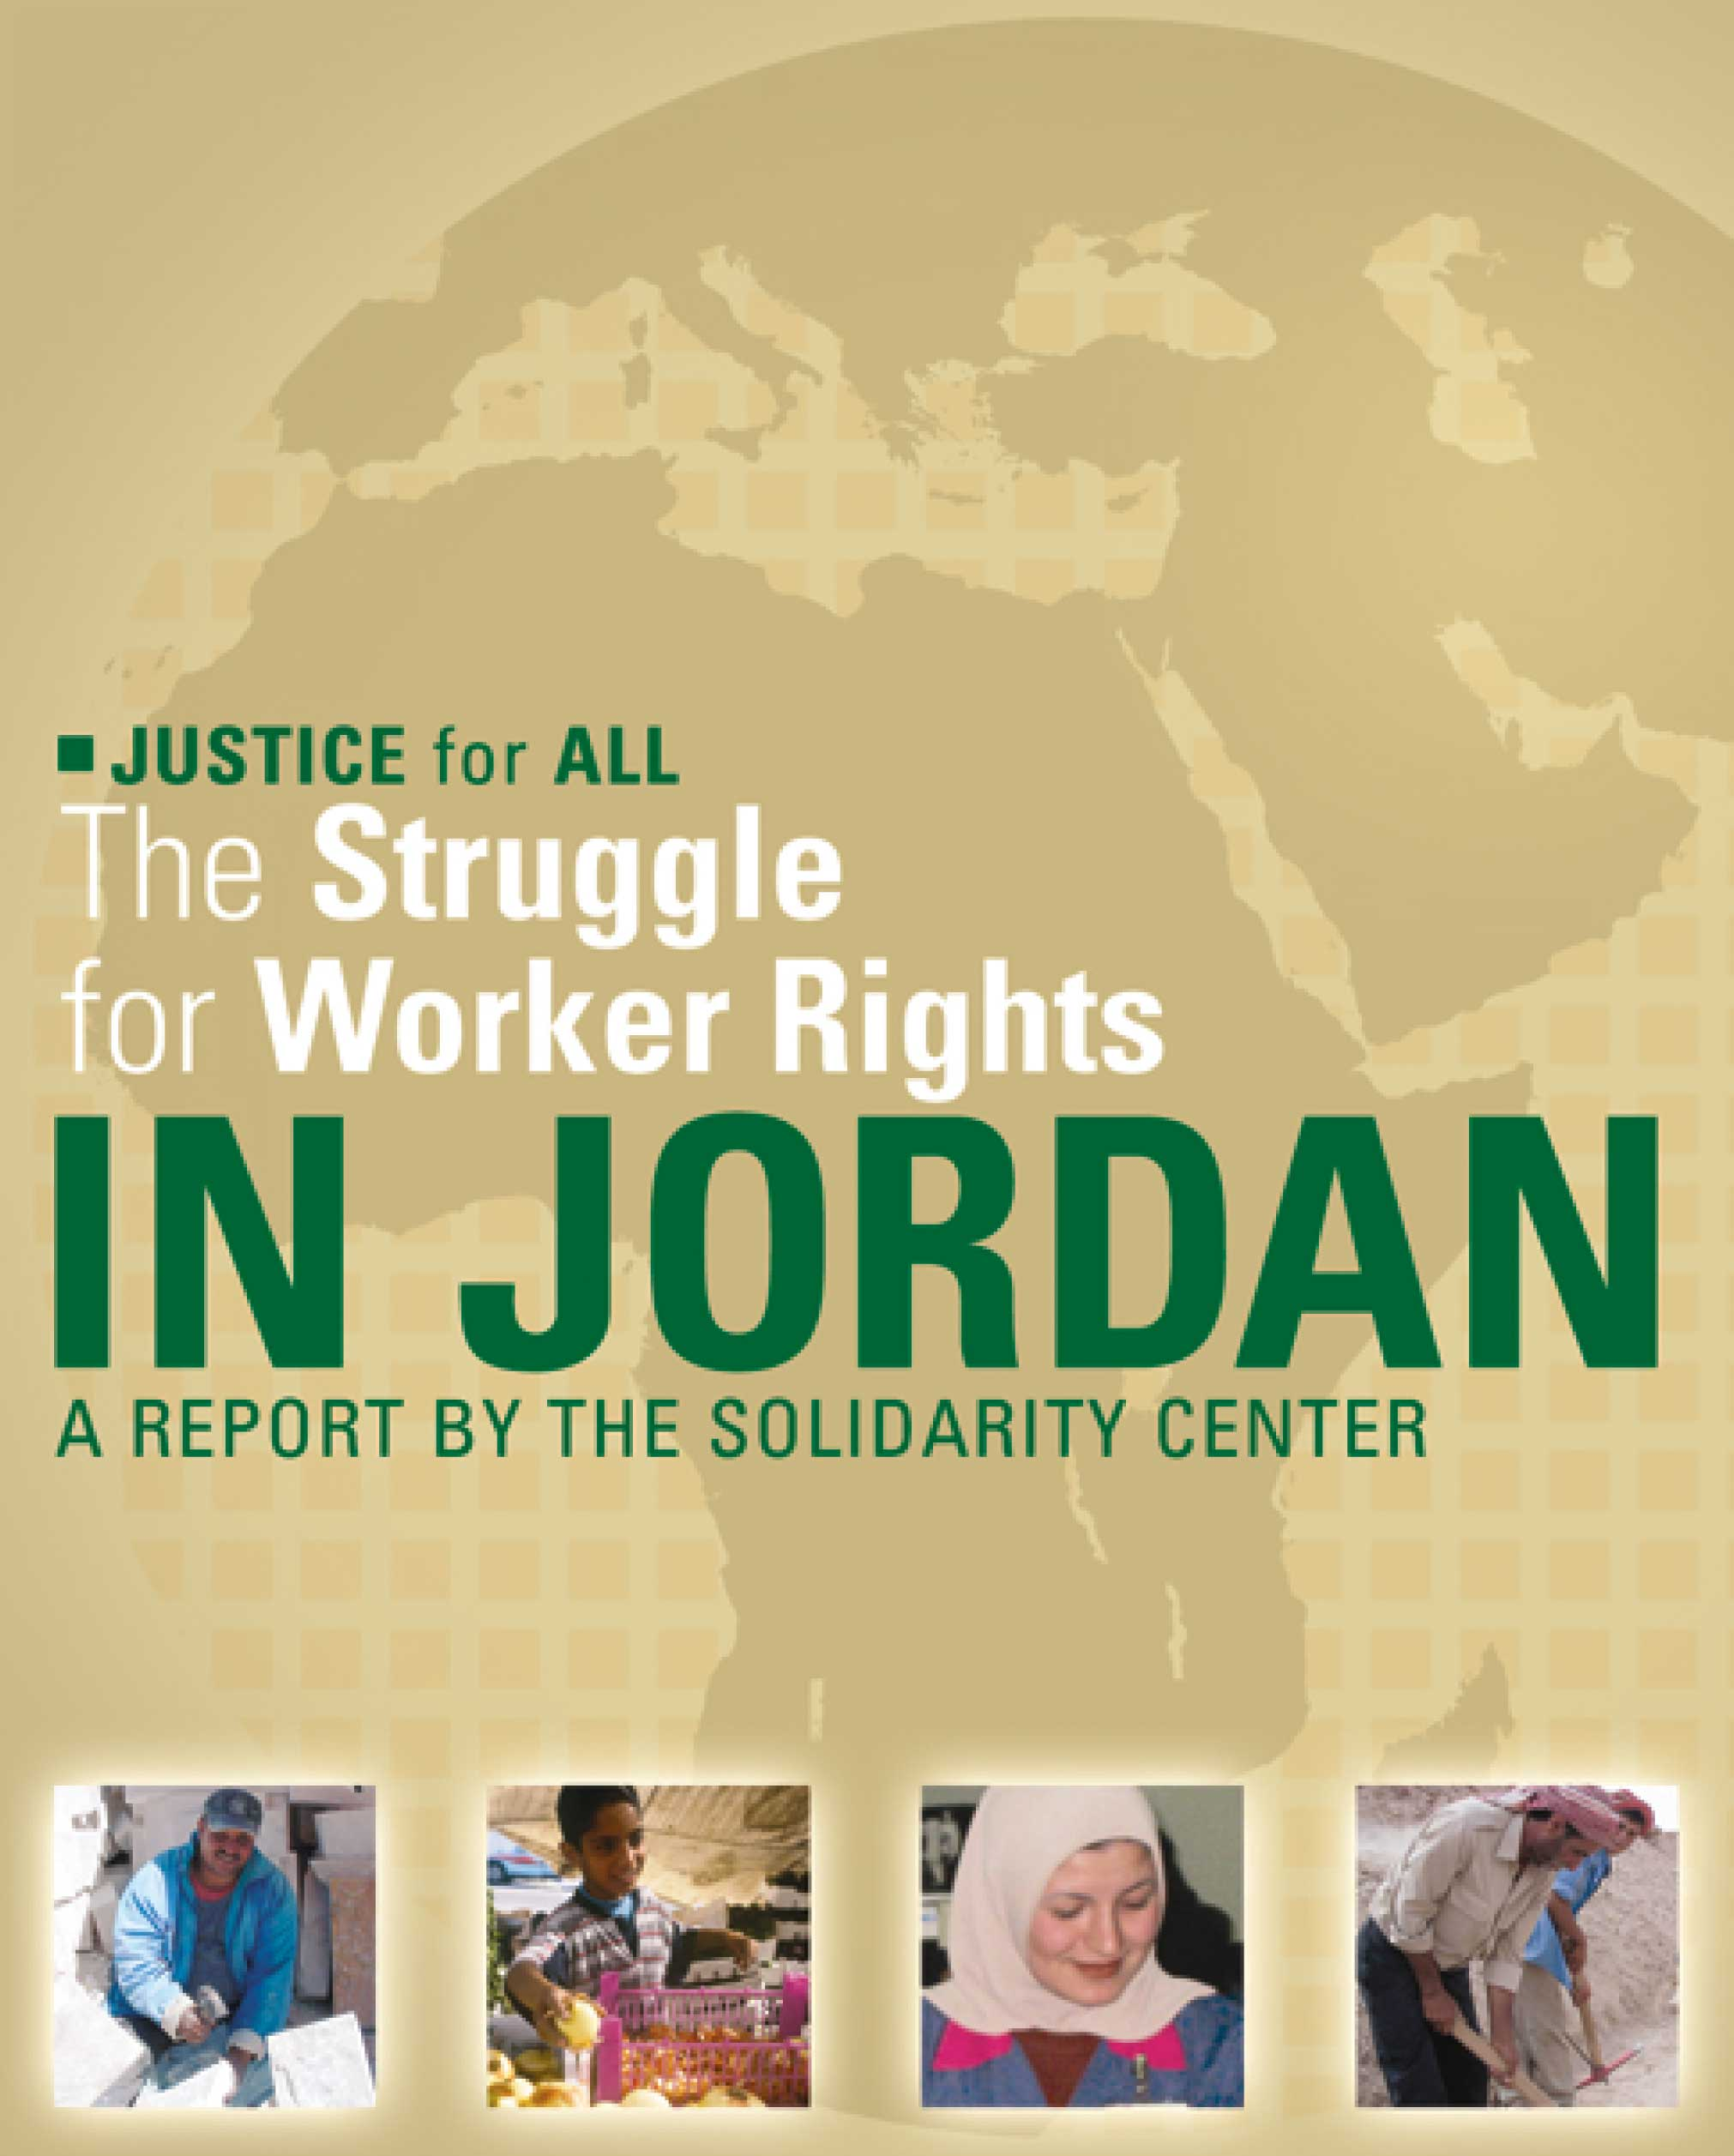 The Struggle for Worker Rights in Jordan (2005)